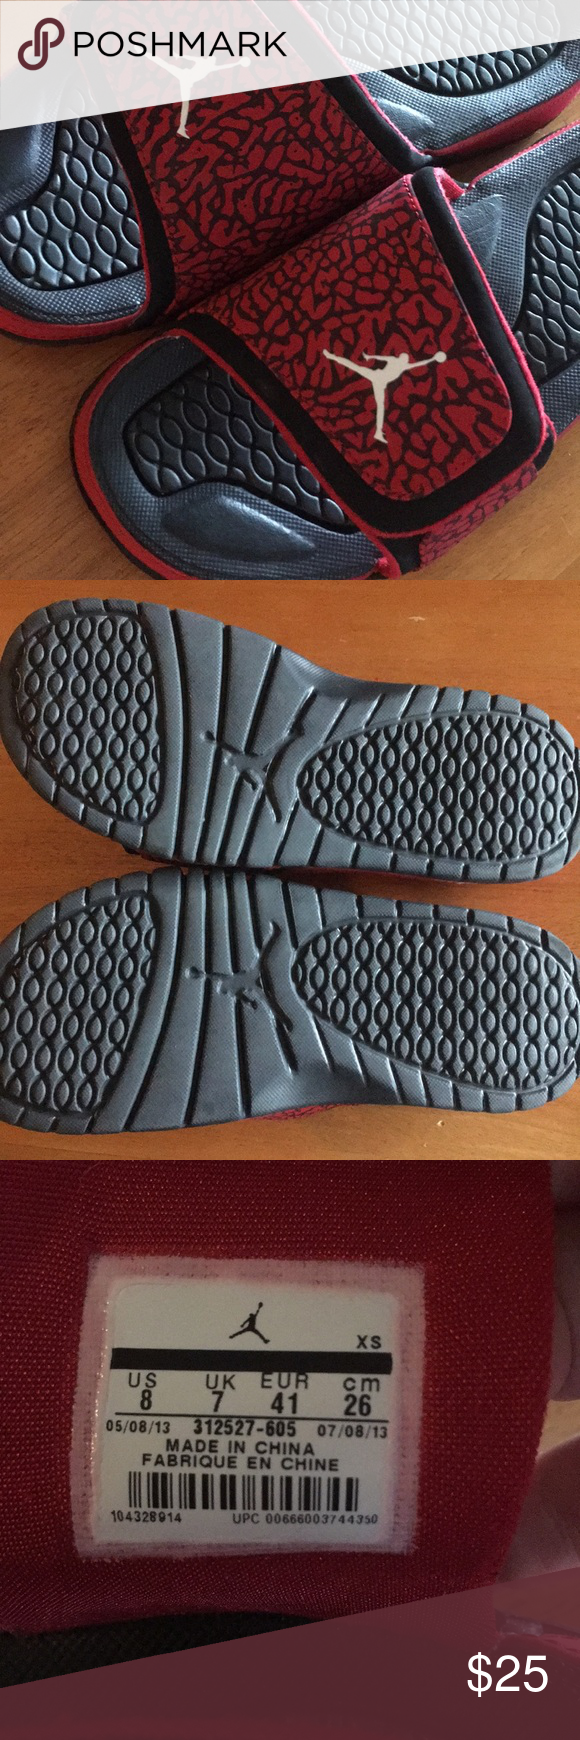 138e2d55cec70 Excellent condition! Bottoms barely show any signs of being worn. I am a  women s size 9.5 10and these fit me well. Jordan Shoes Sandals